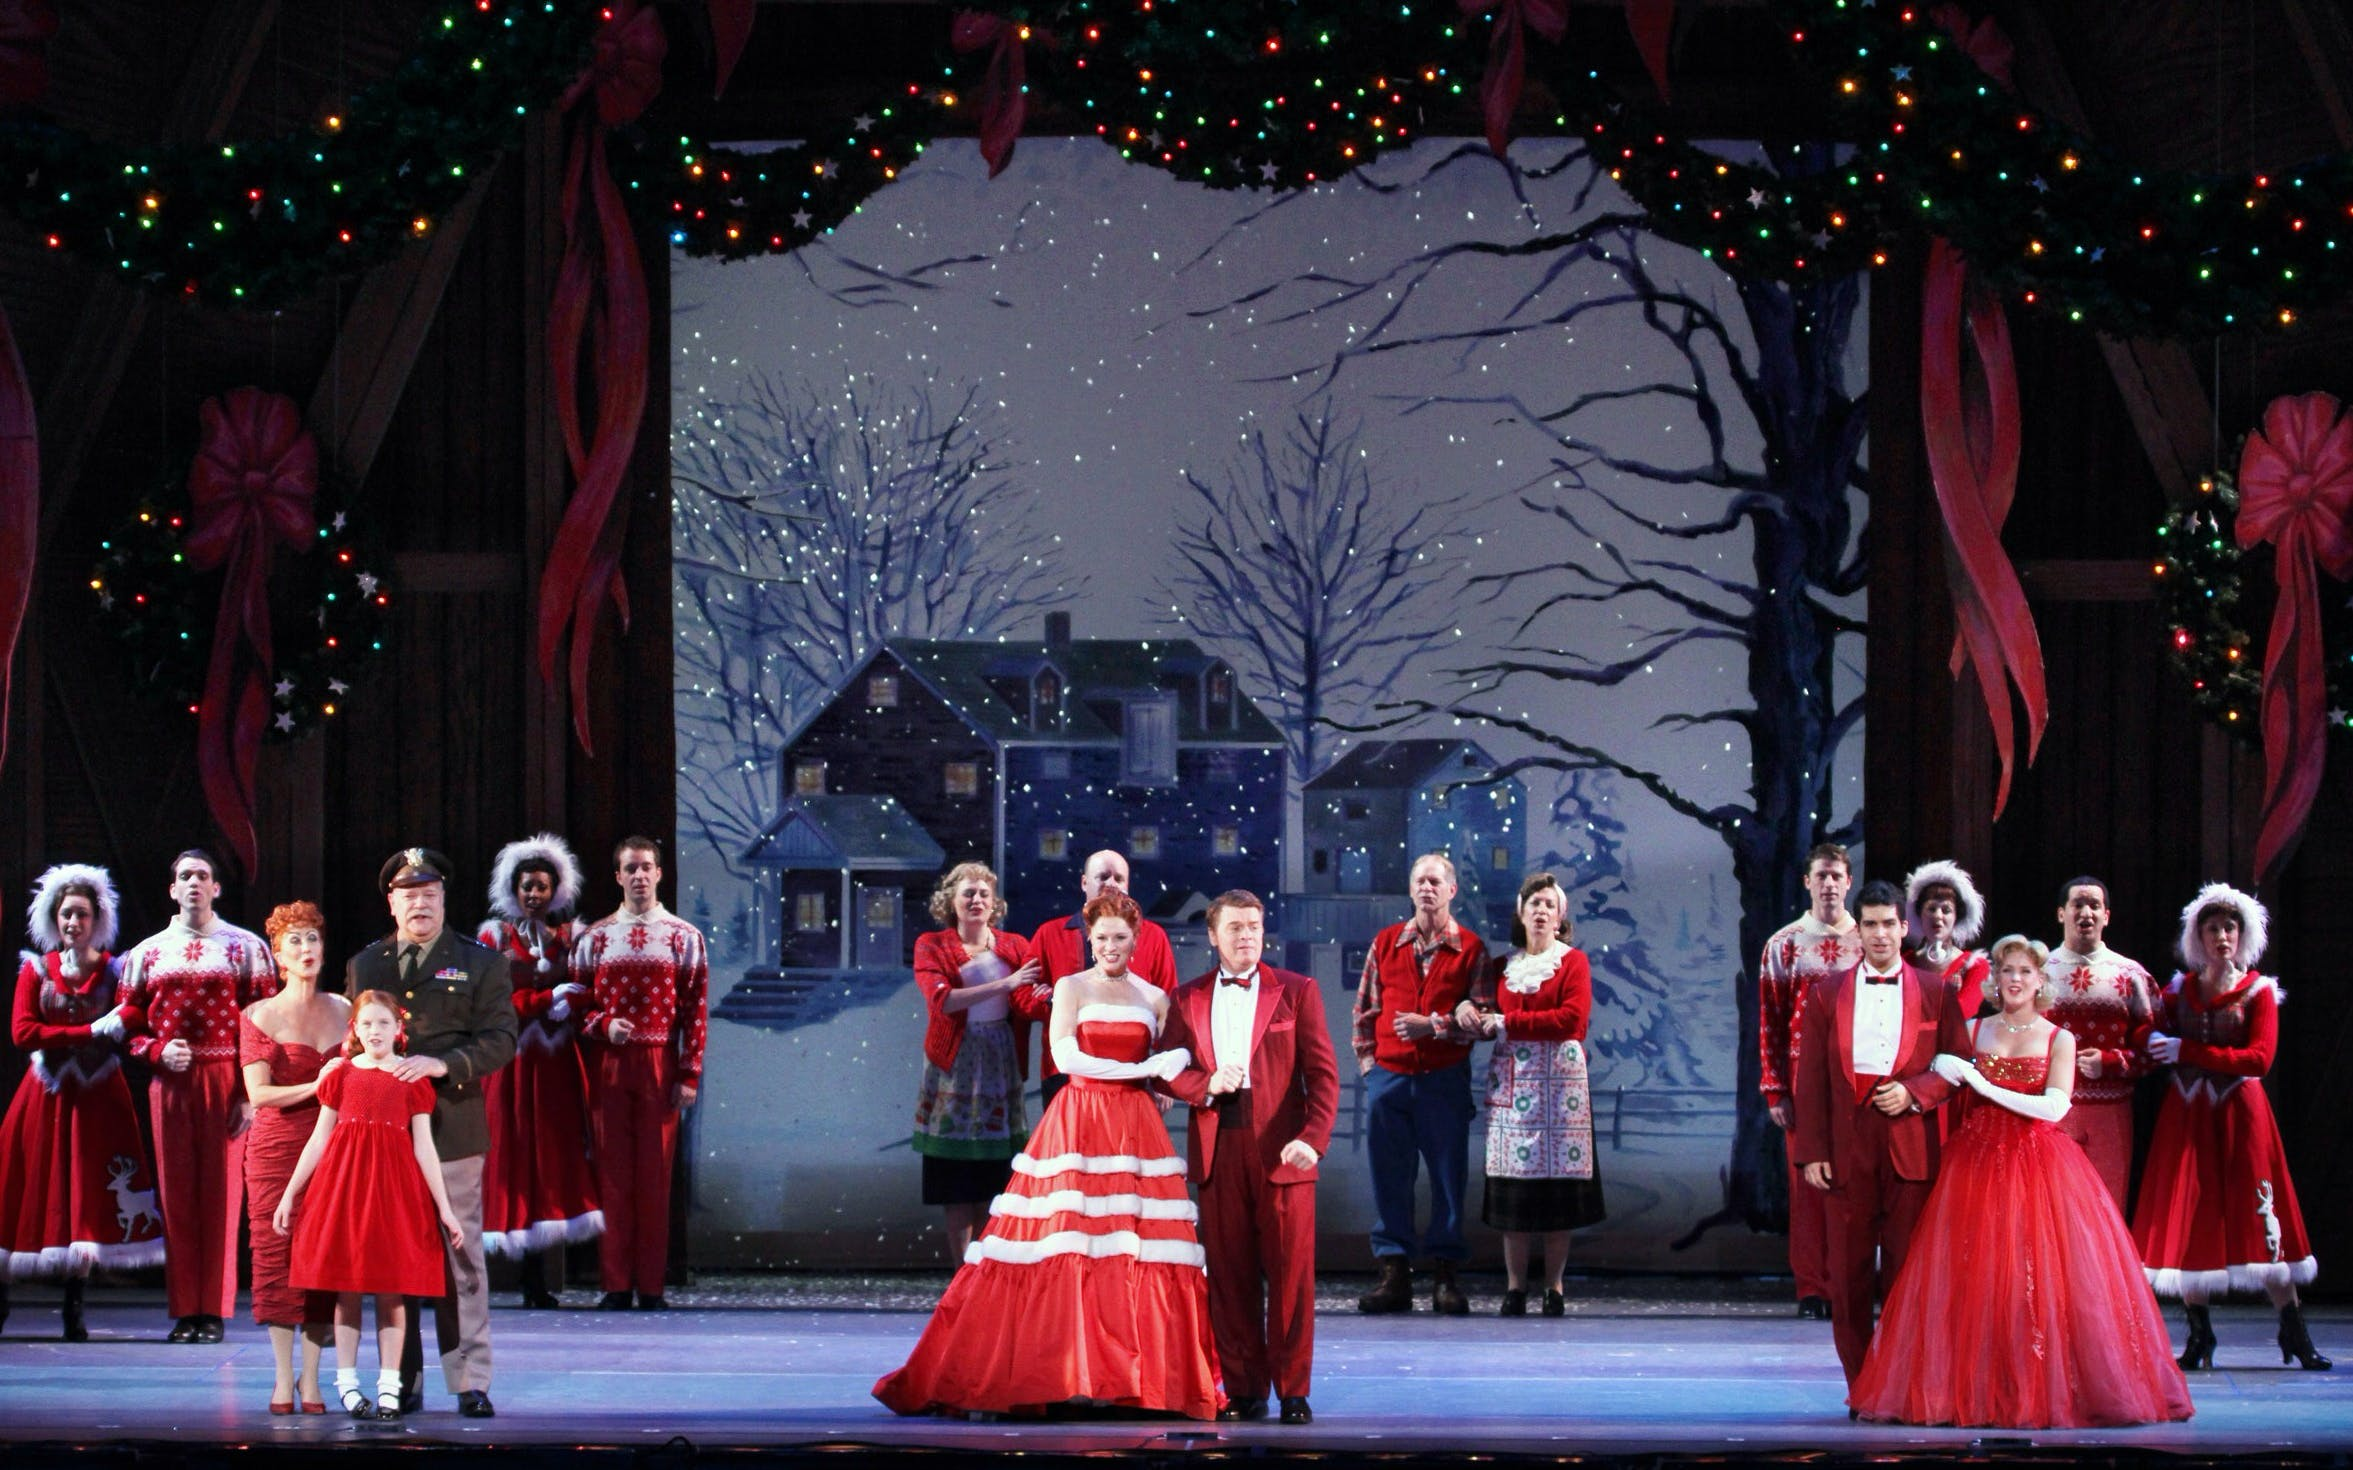 irving berlin's white christmas -1